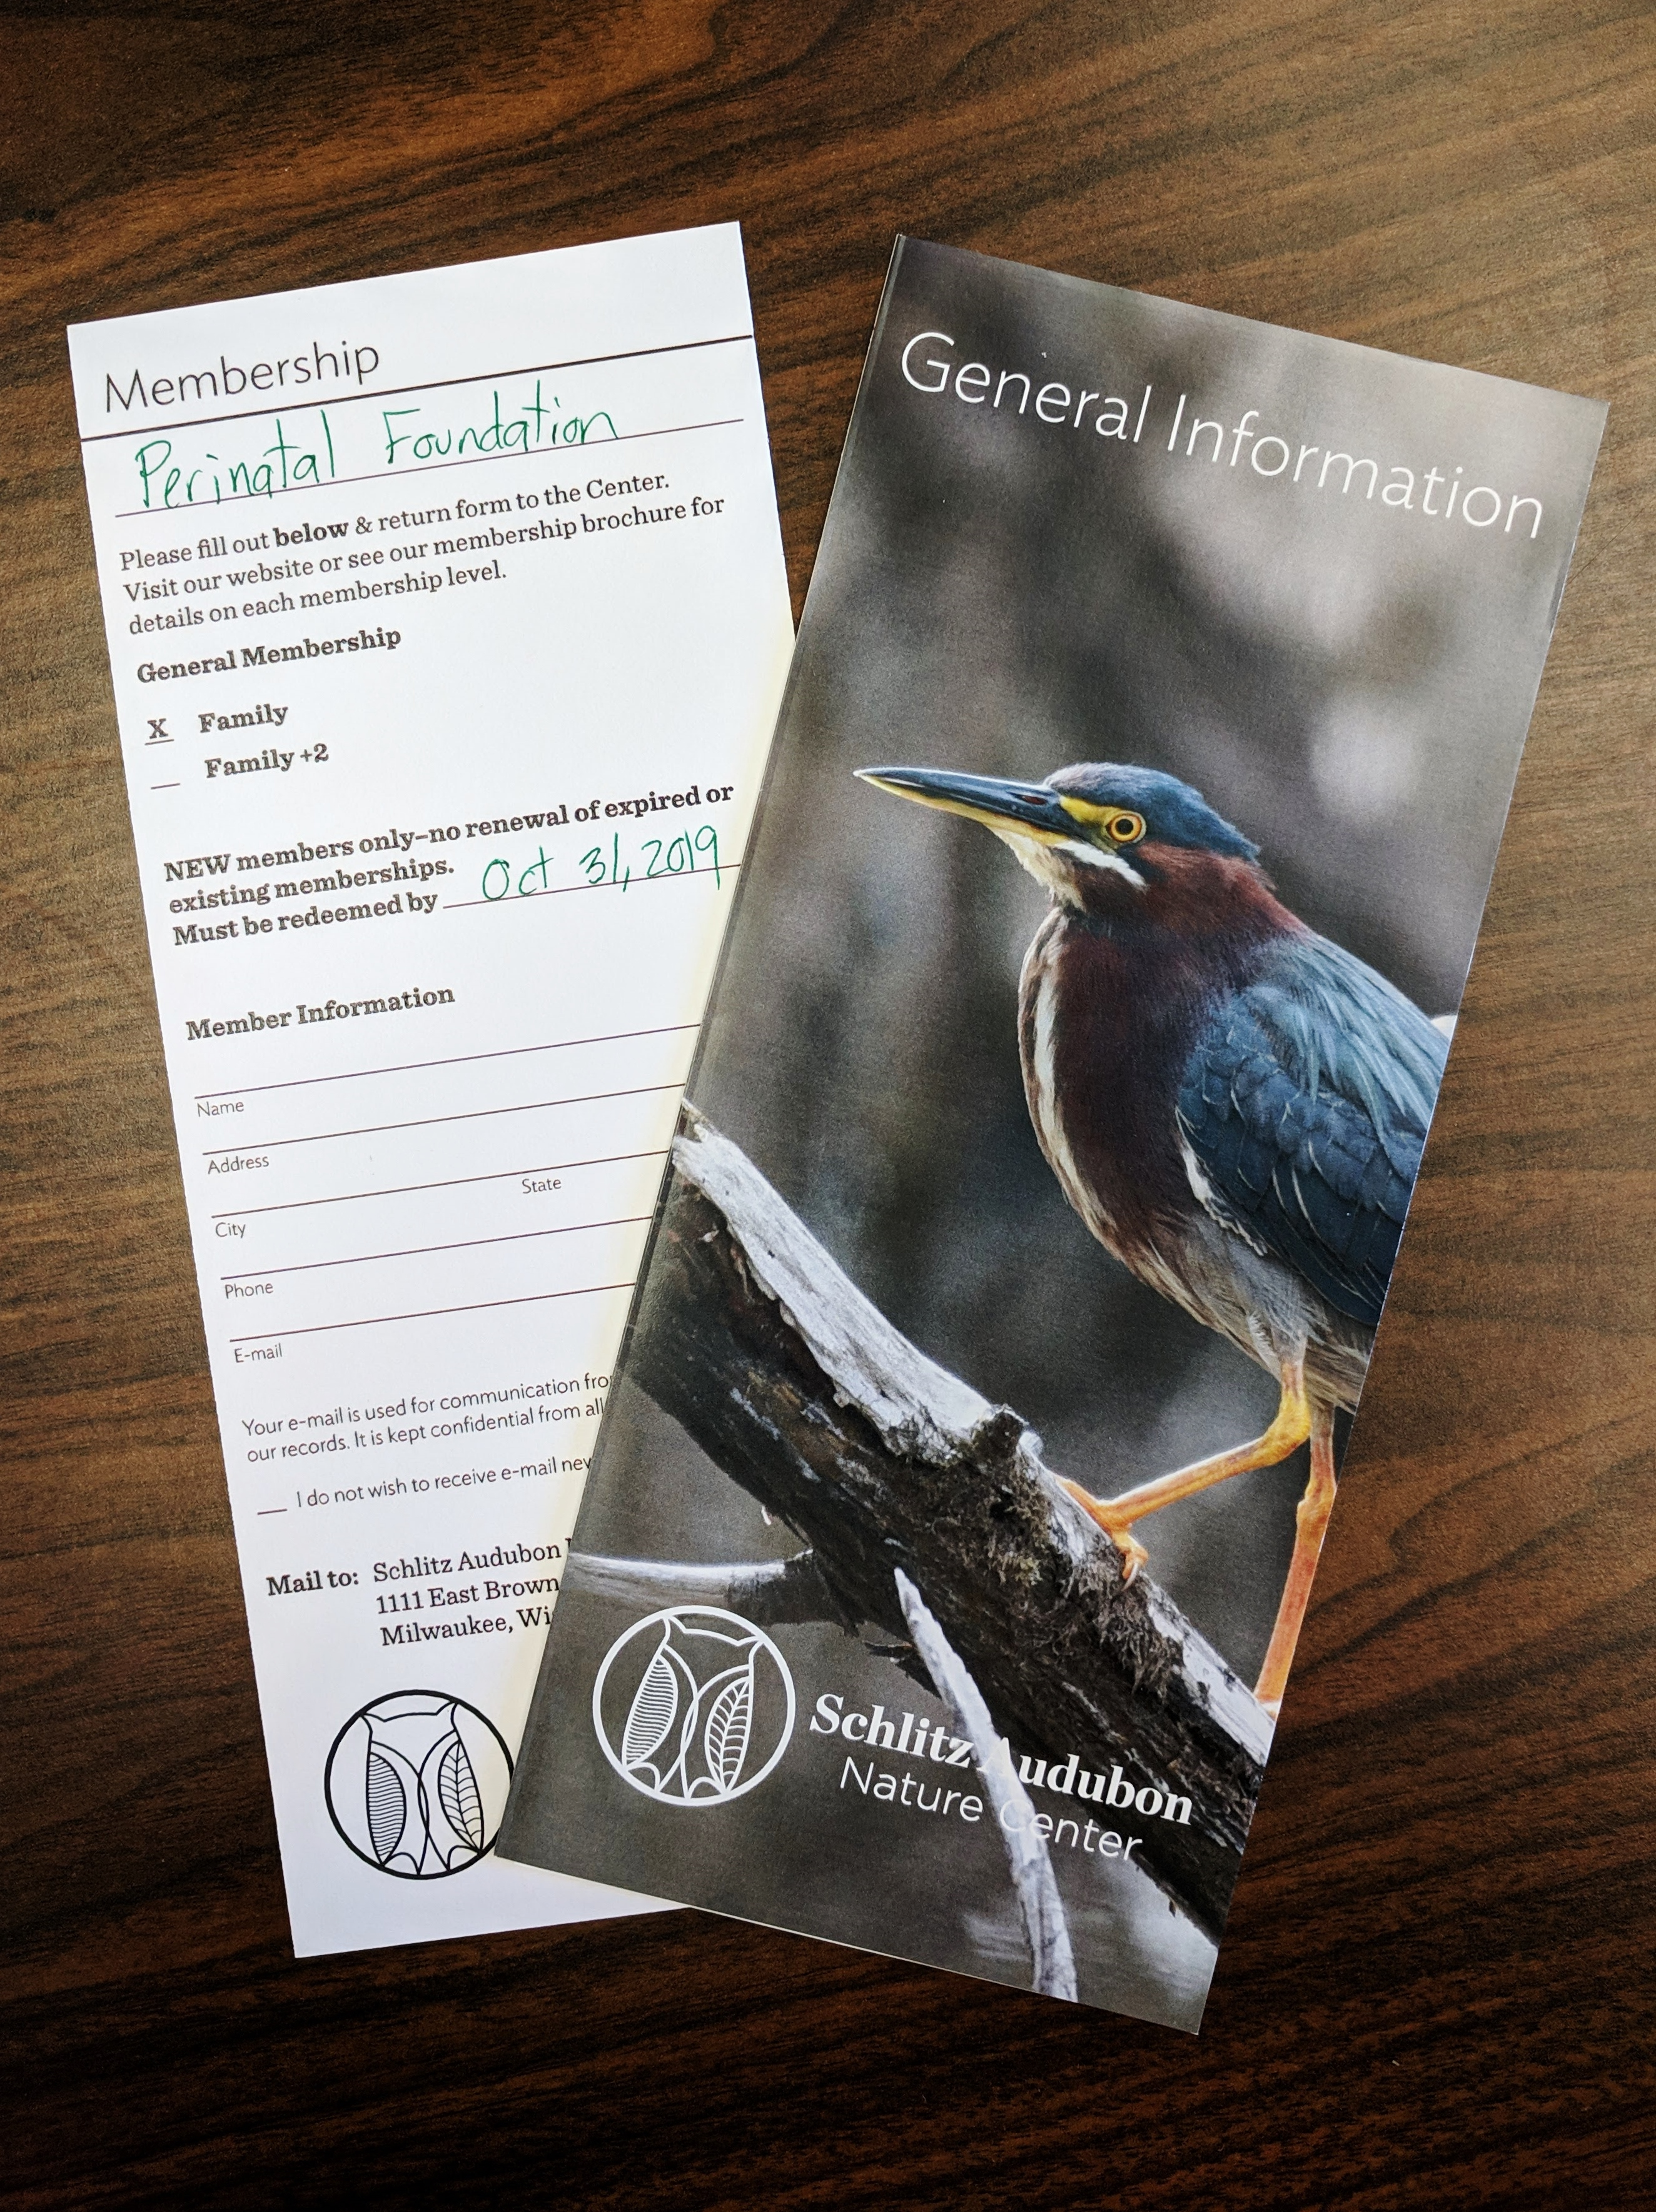 One-Year Family Membership to the Schlitz Audubon Nature Center in Bayside, WI